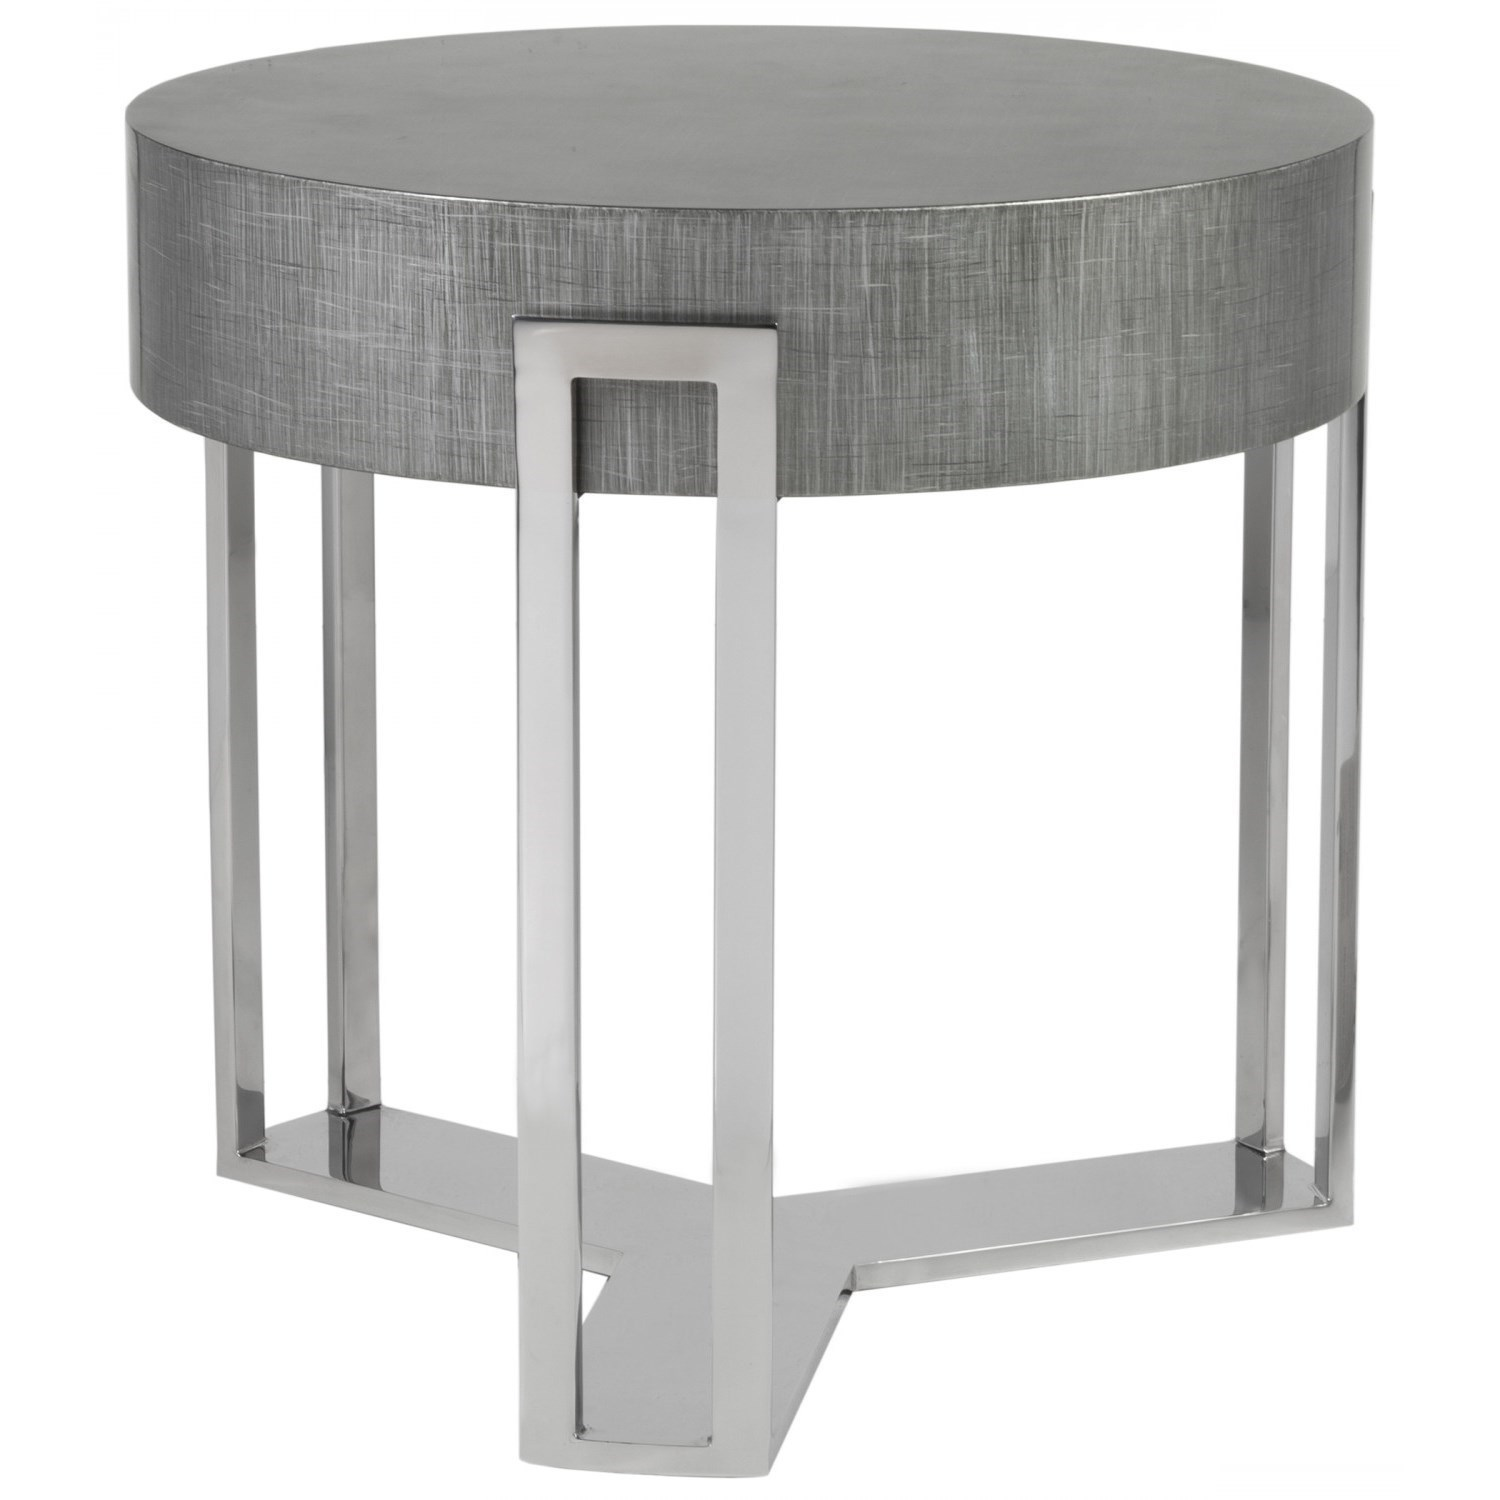 Iridium Round End Table by Artistica at Baer's Furniture